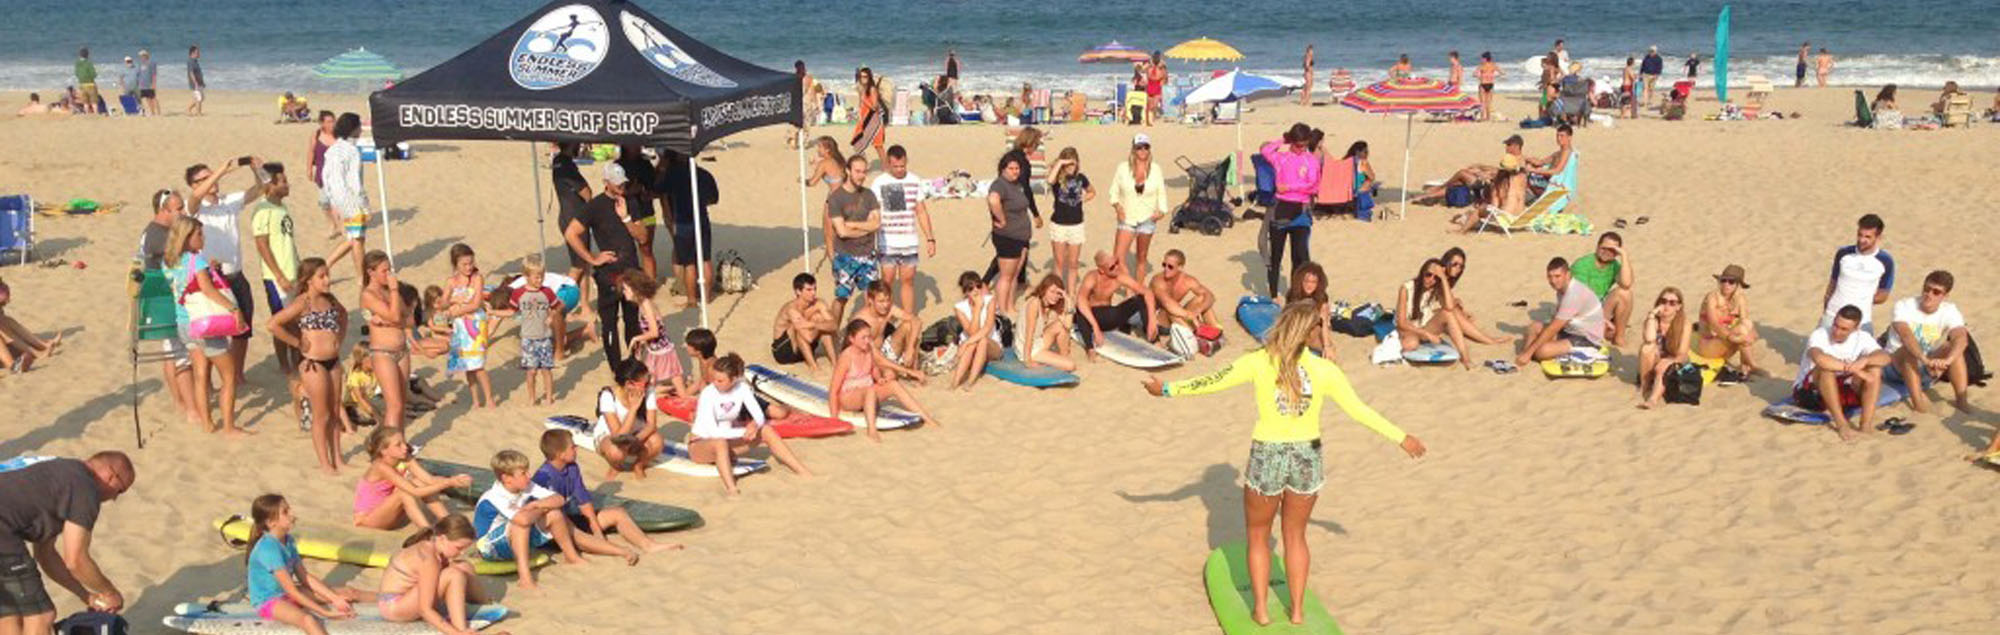 endless summer instructor giving surf lesson to crowd of kids